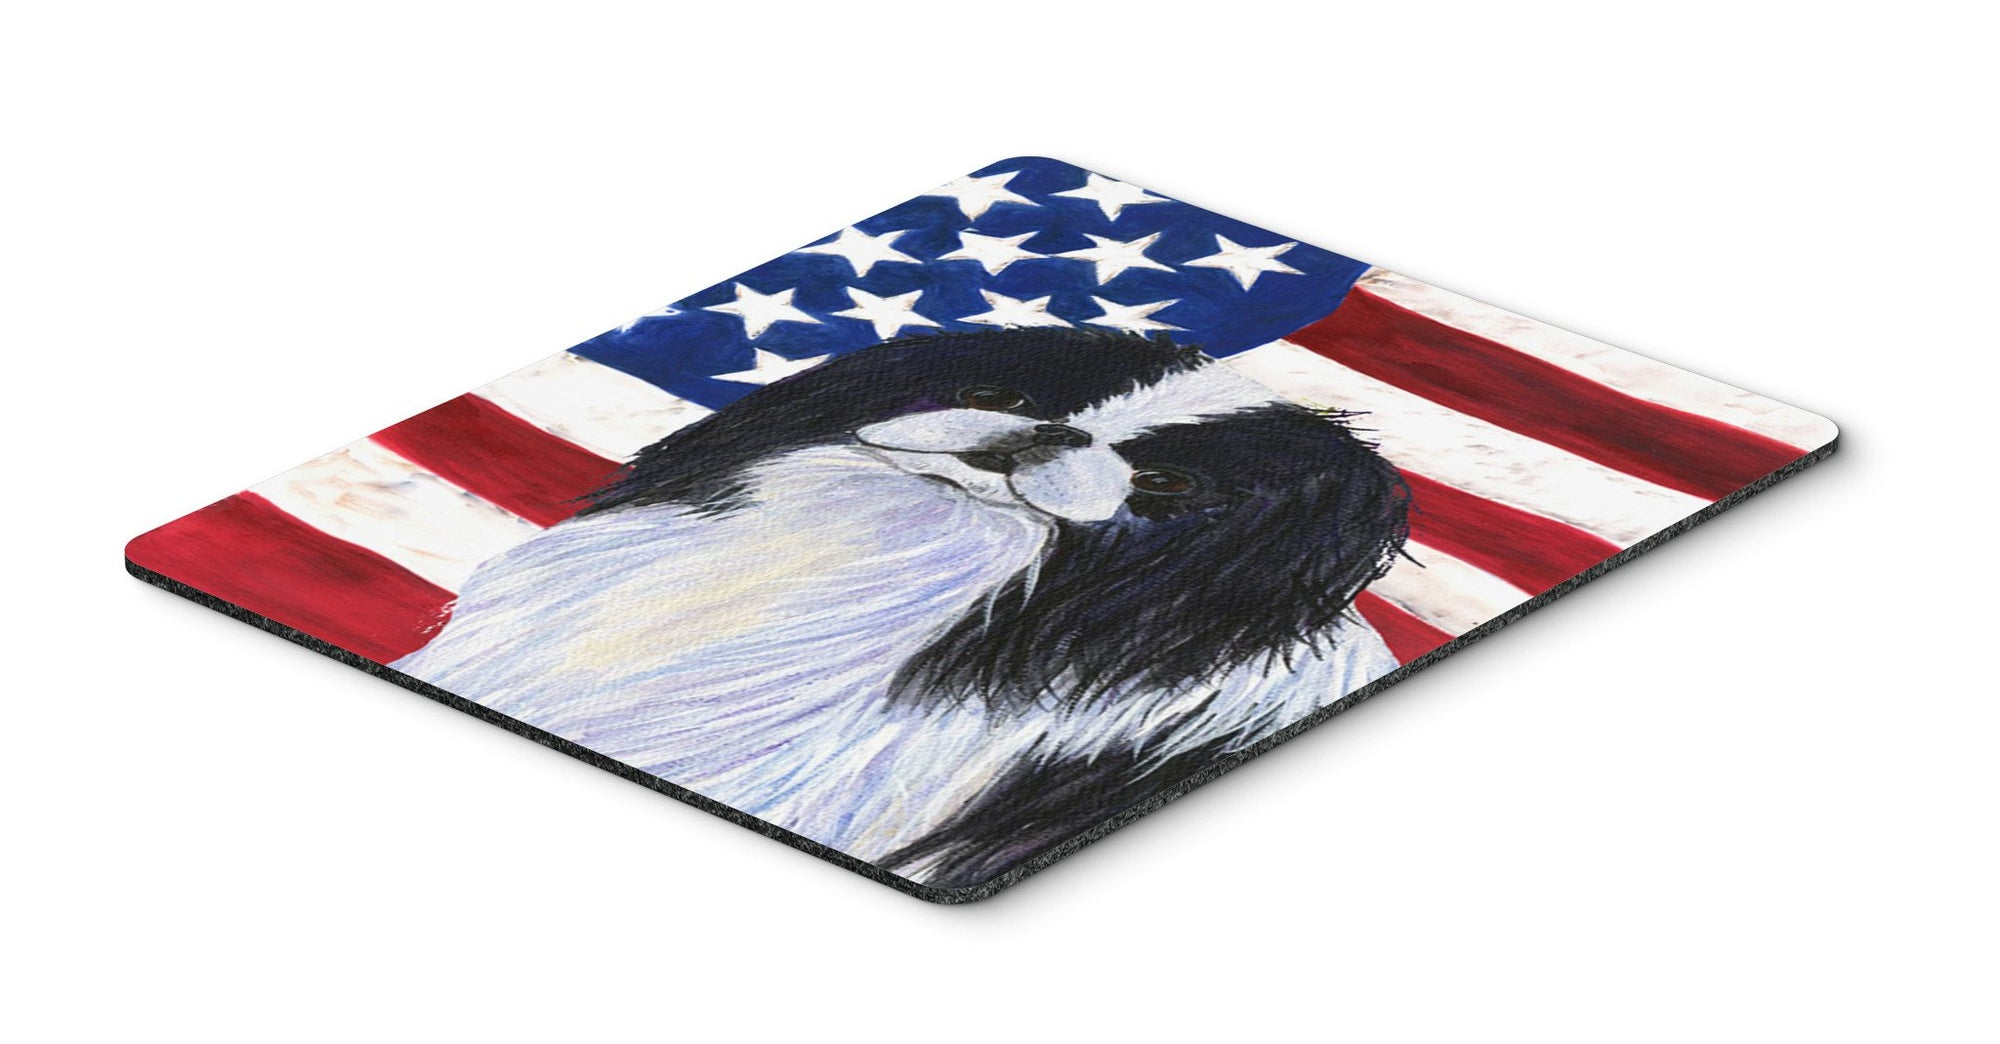 USA American Flag with Japanese Chin Mouse Pad, Hot Pad or Trivet by Caroline's Treasures